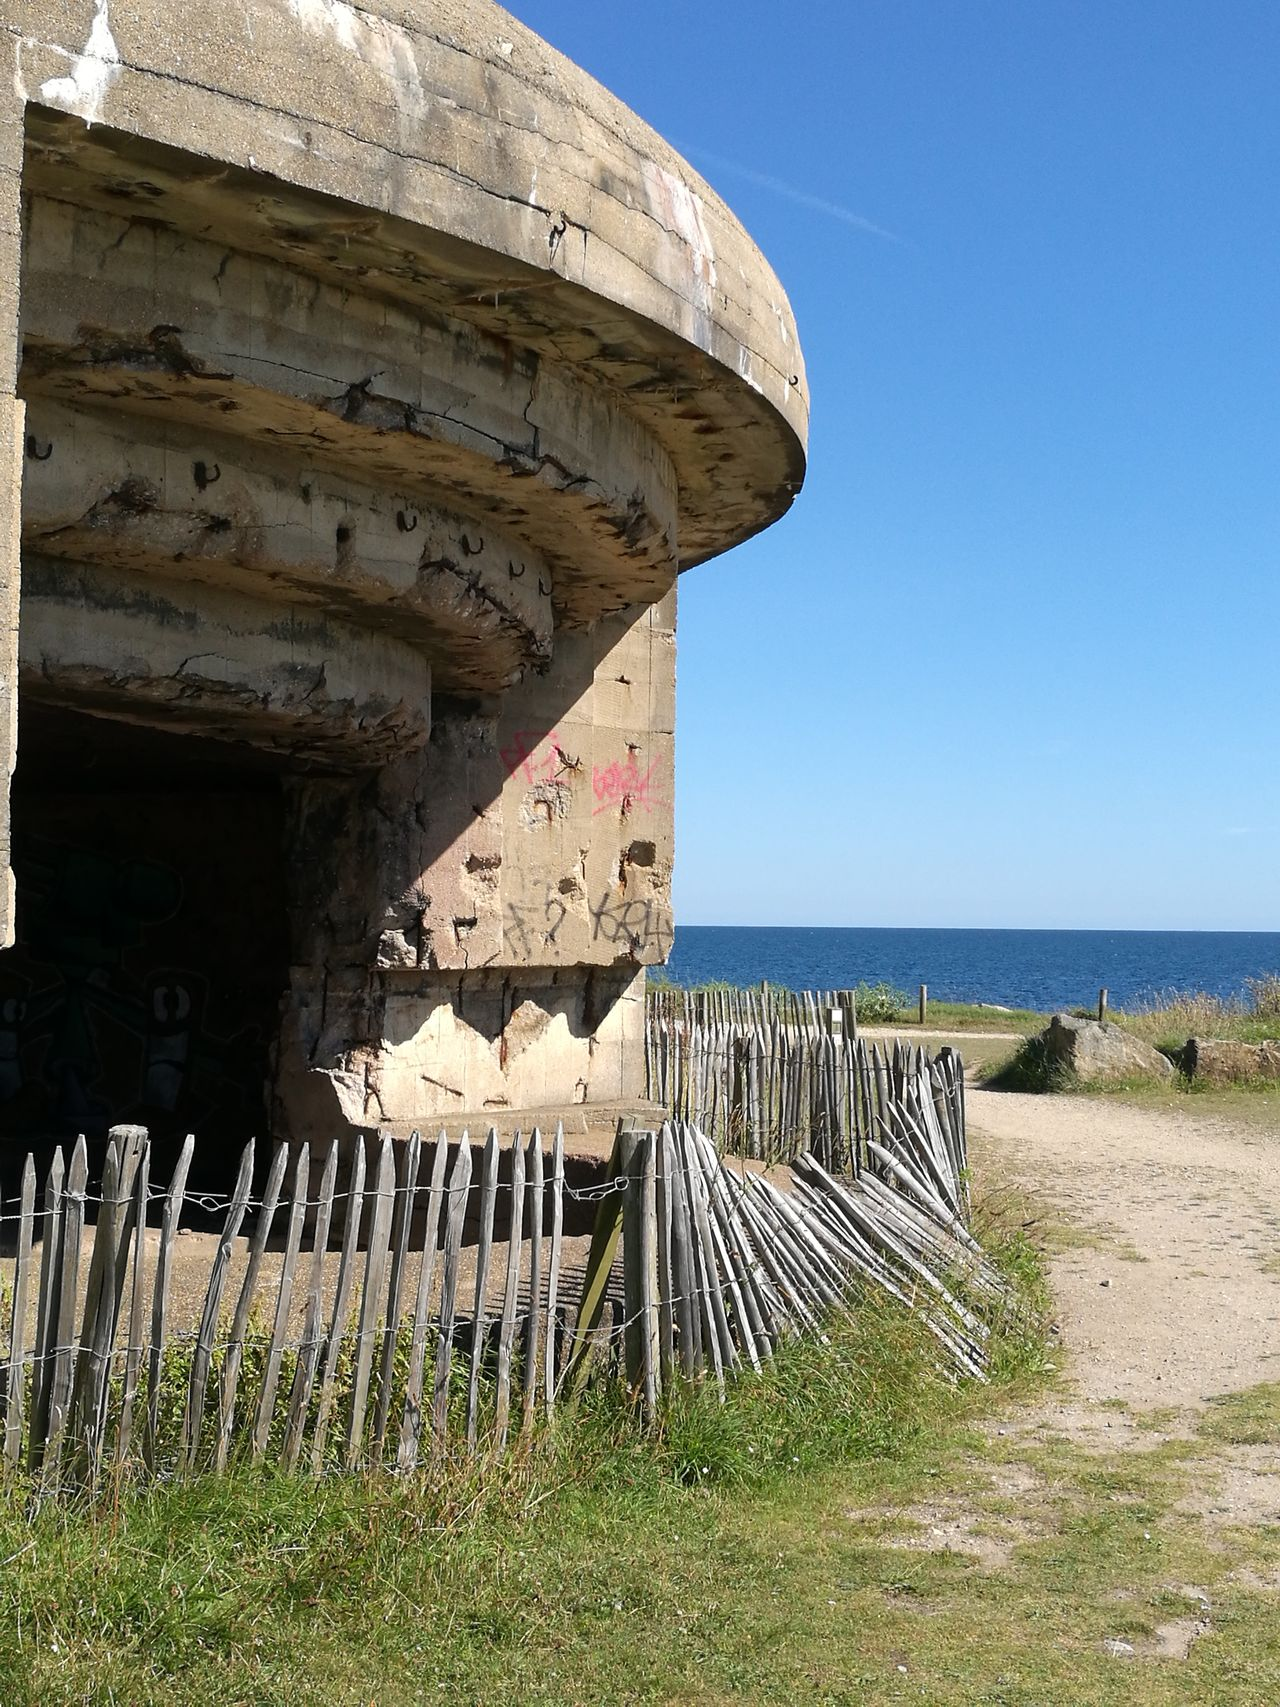 Atlantic Ocean Atlantic Wall Bunker Gâvres Bretagne War Monument Historical Monuments Way To The Ocean Holidays